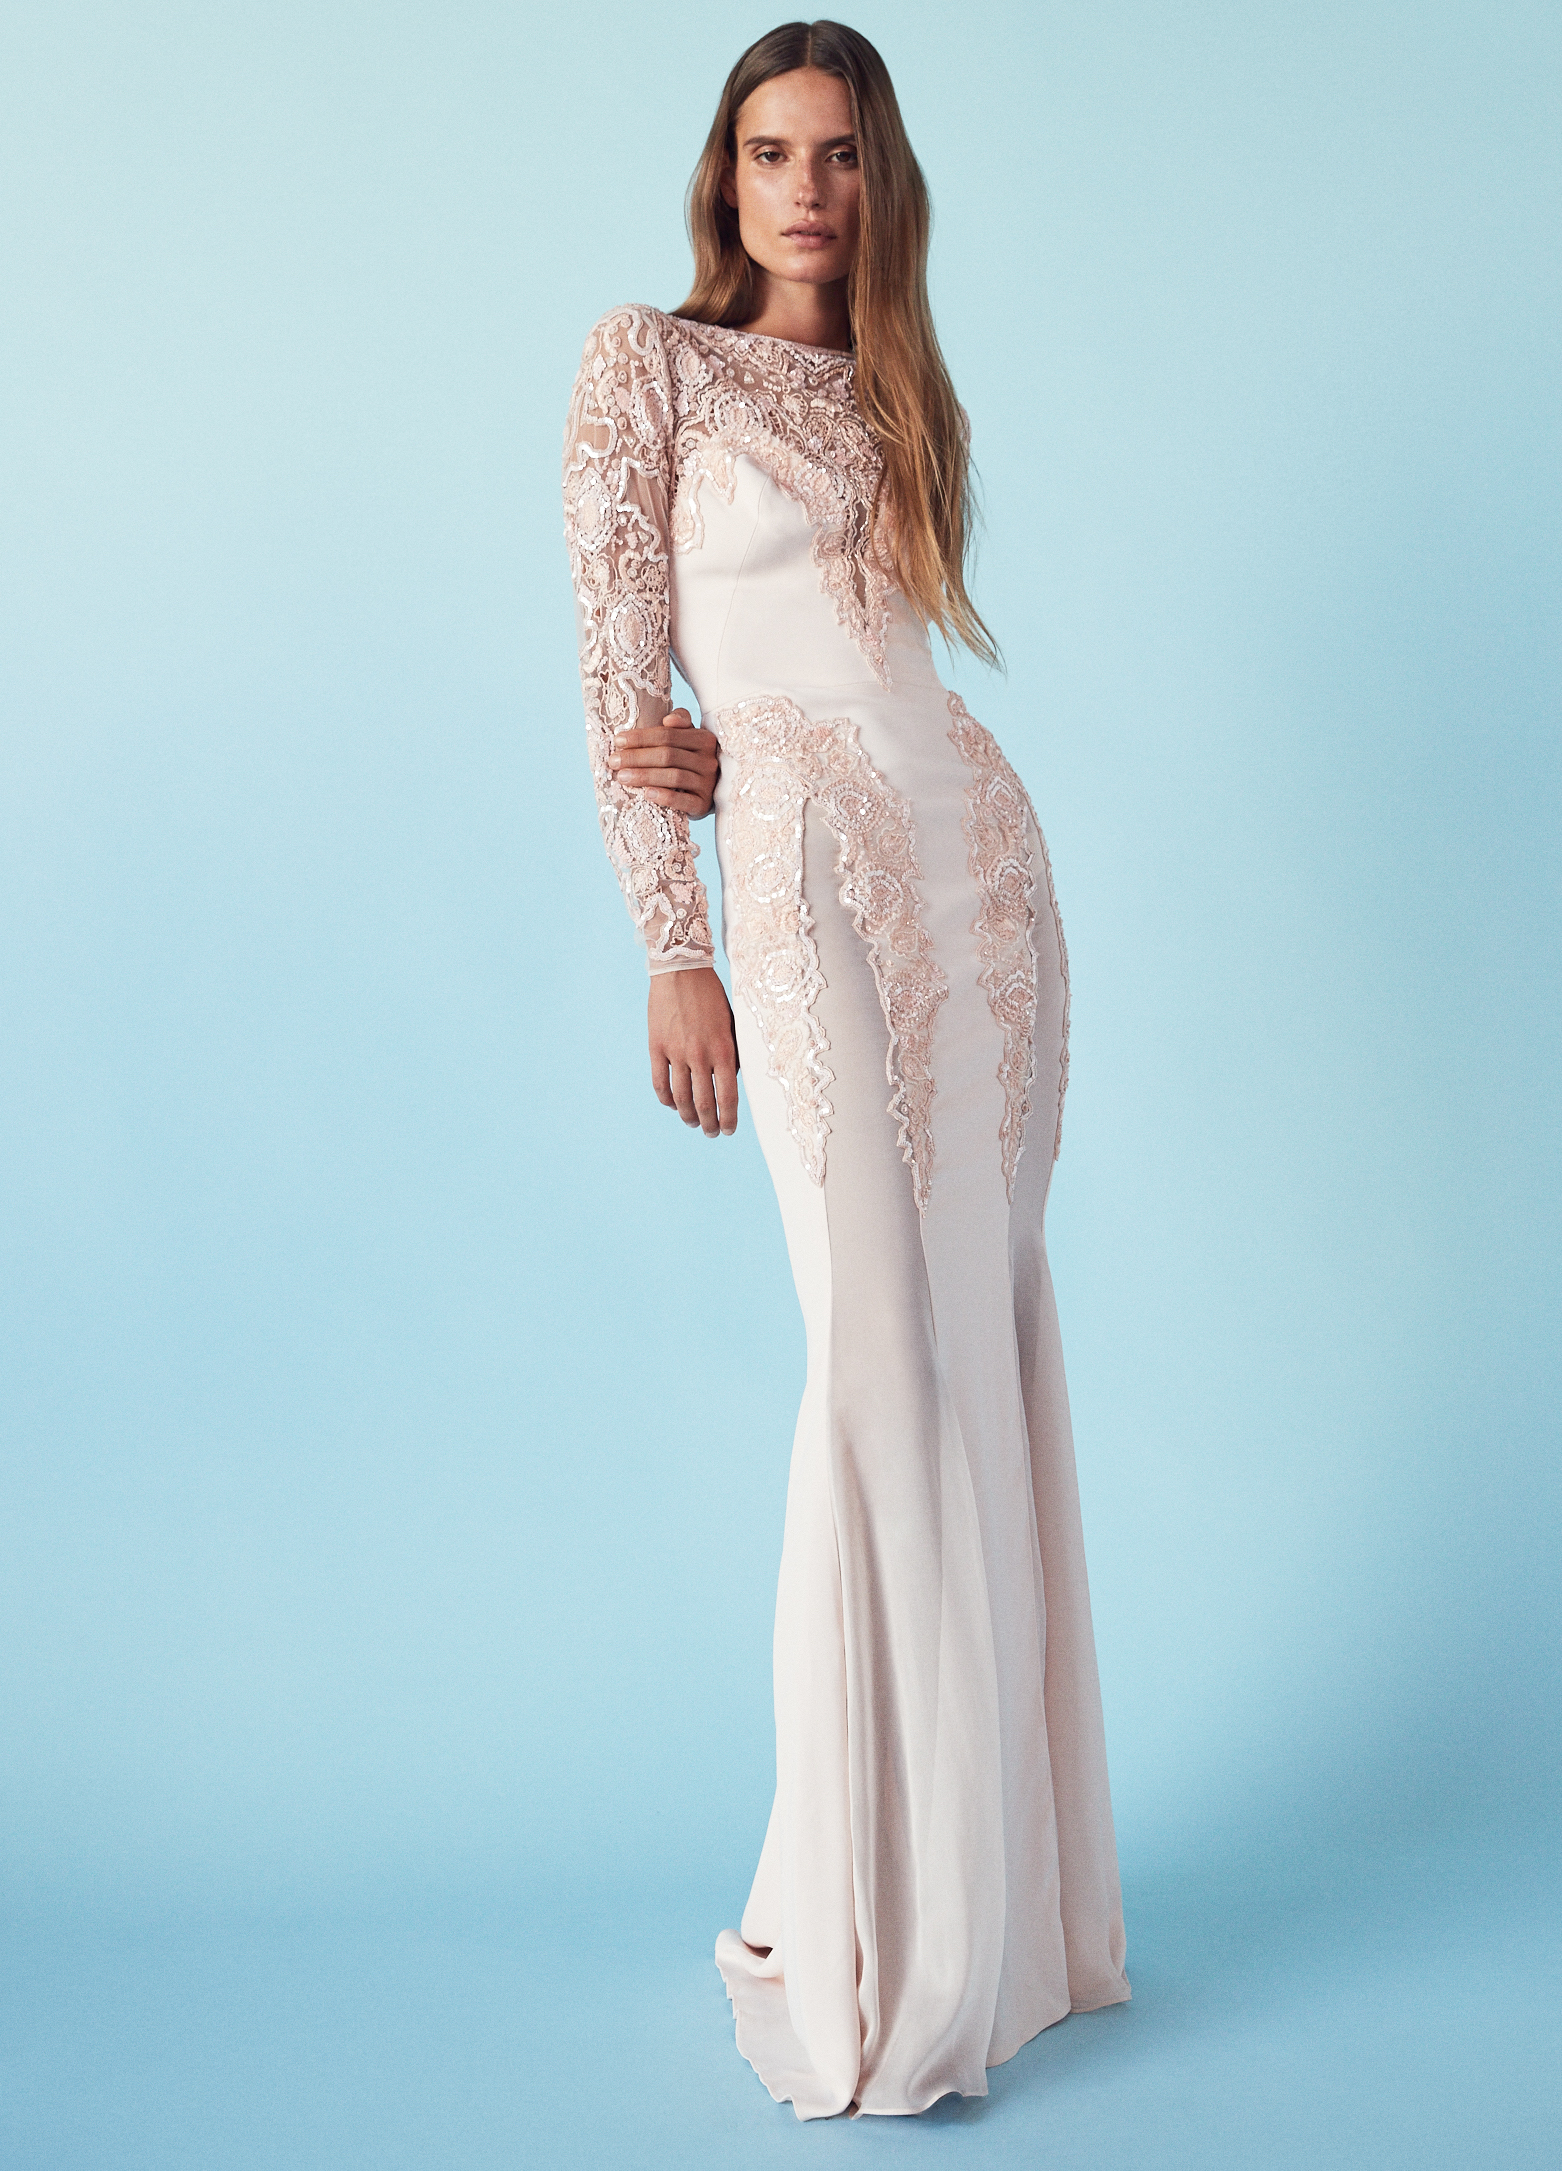 A Model Wearing An Off White Embroidered Wedding Gown By Zuhair Murad